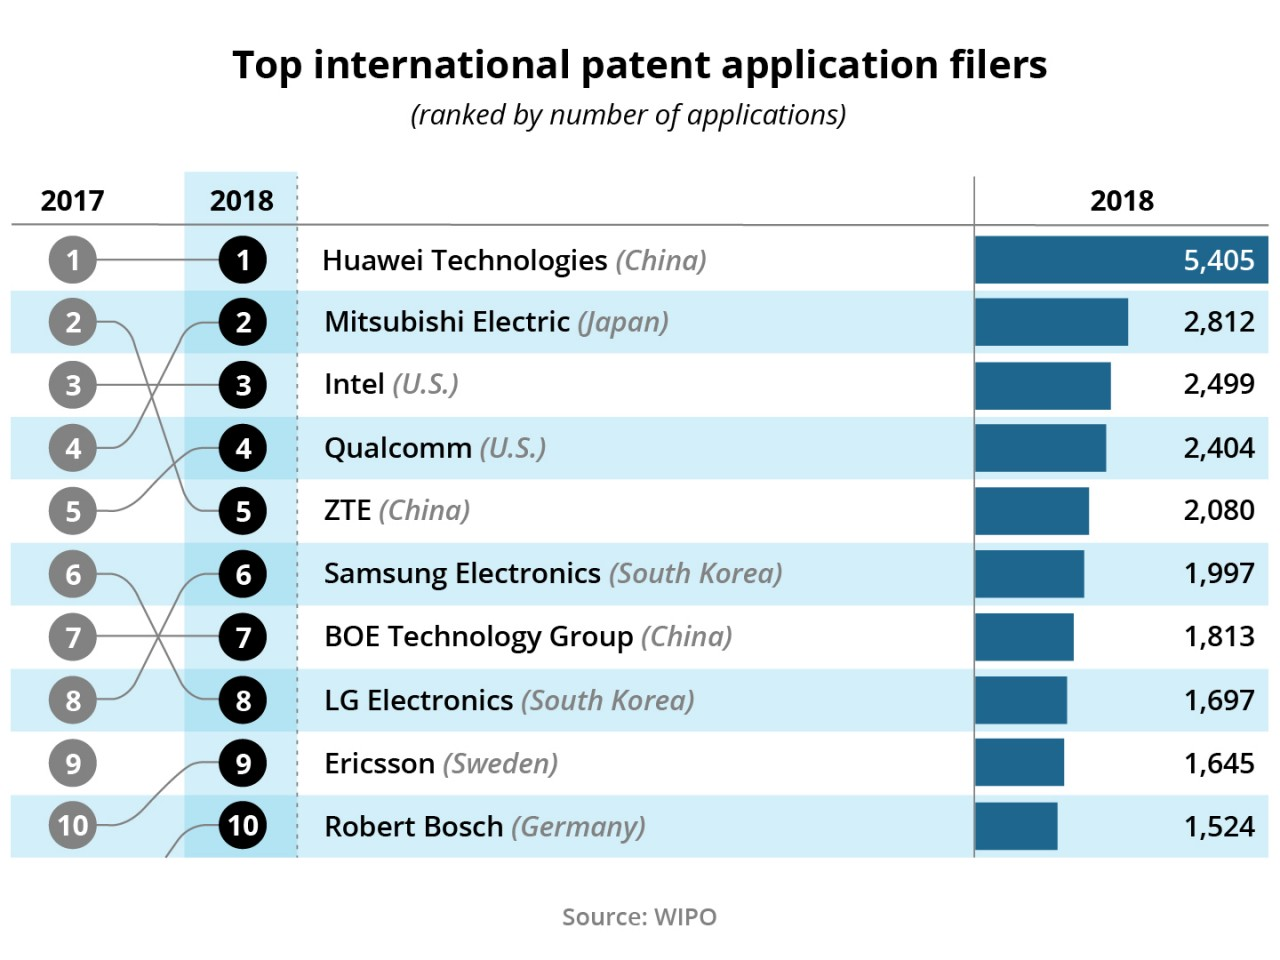 Figure 9: Top international patent application filers